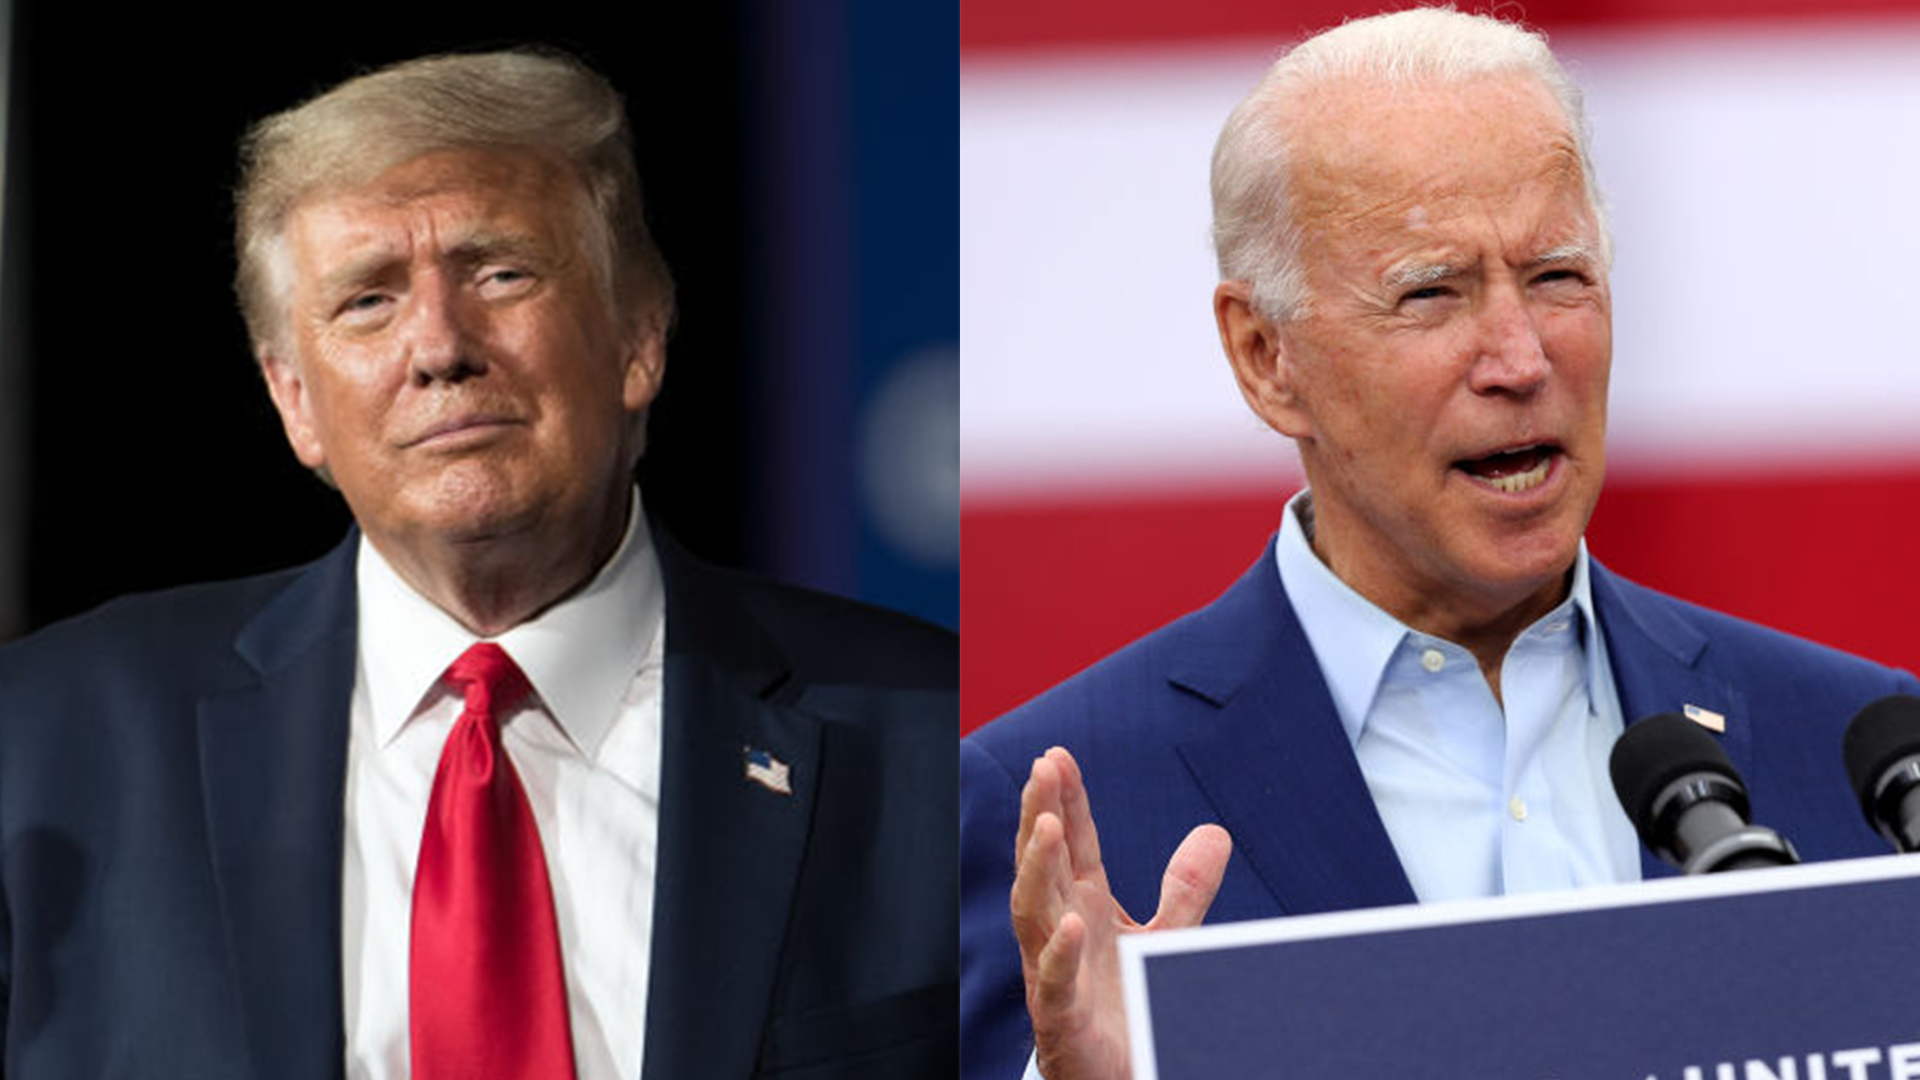 Trump or Biden? Latest polls in the 6 states that could decide the election  | WPRI.com